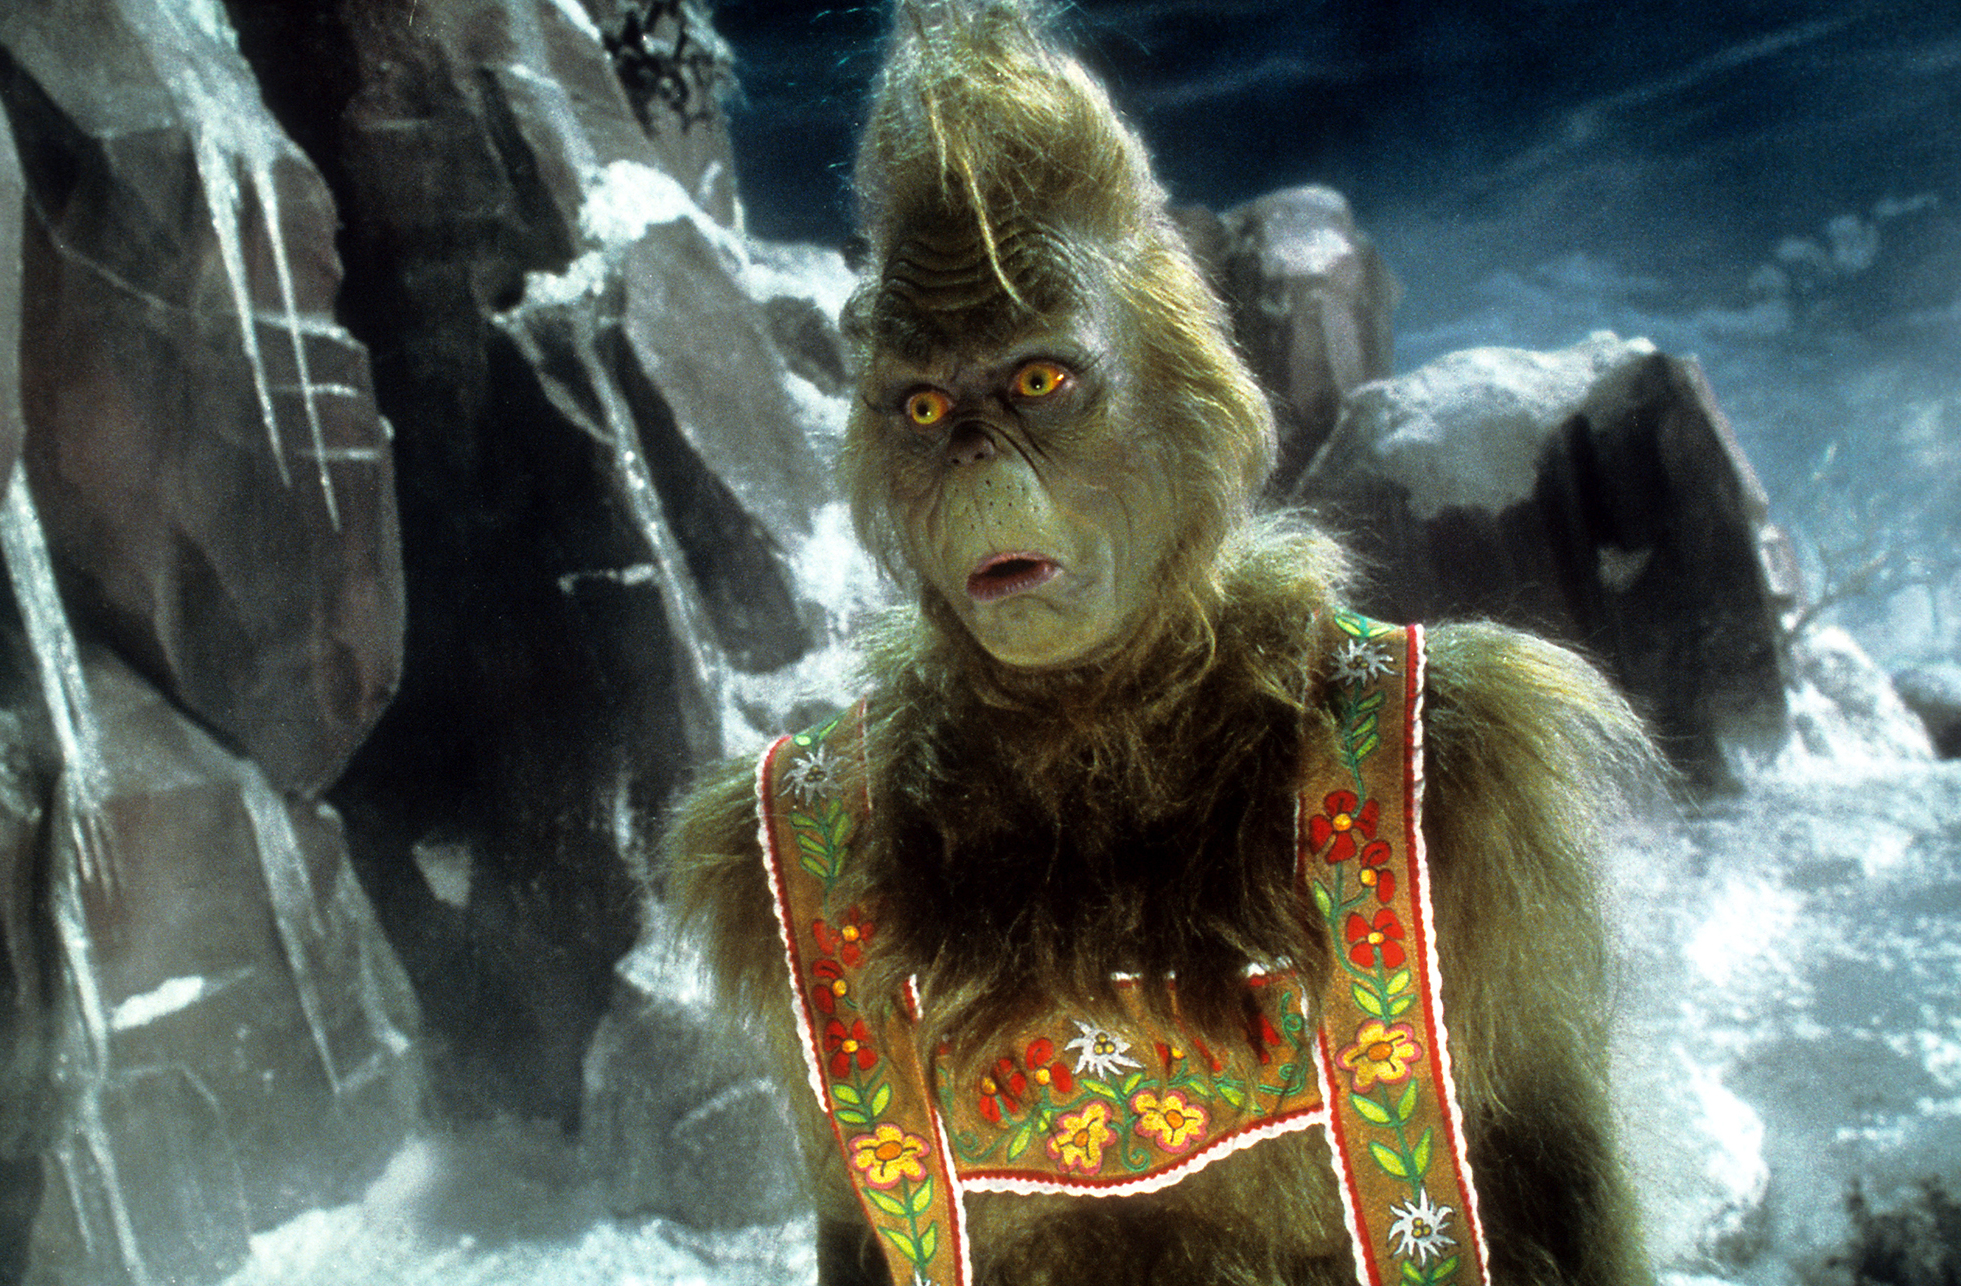 jim carrey stars as the title character the 2000 version of how the grinch stole christmas - How The Grinch Stole Christmas Jim Carrey